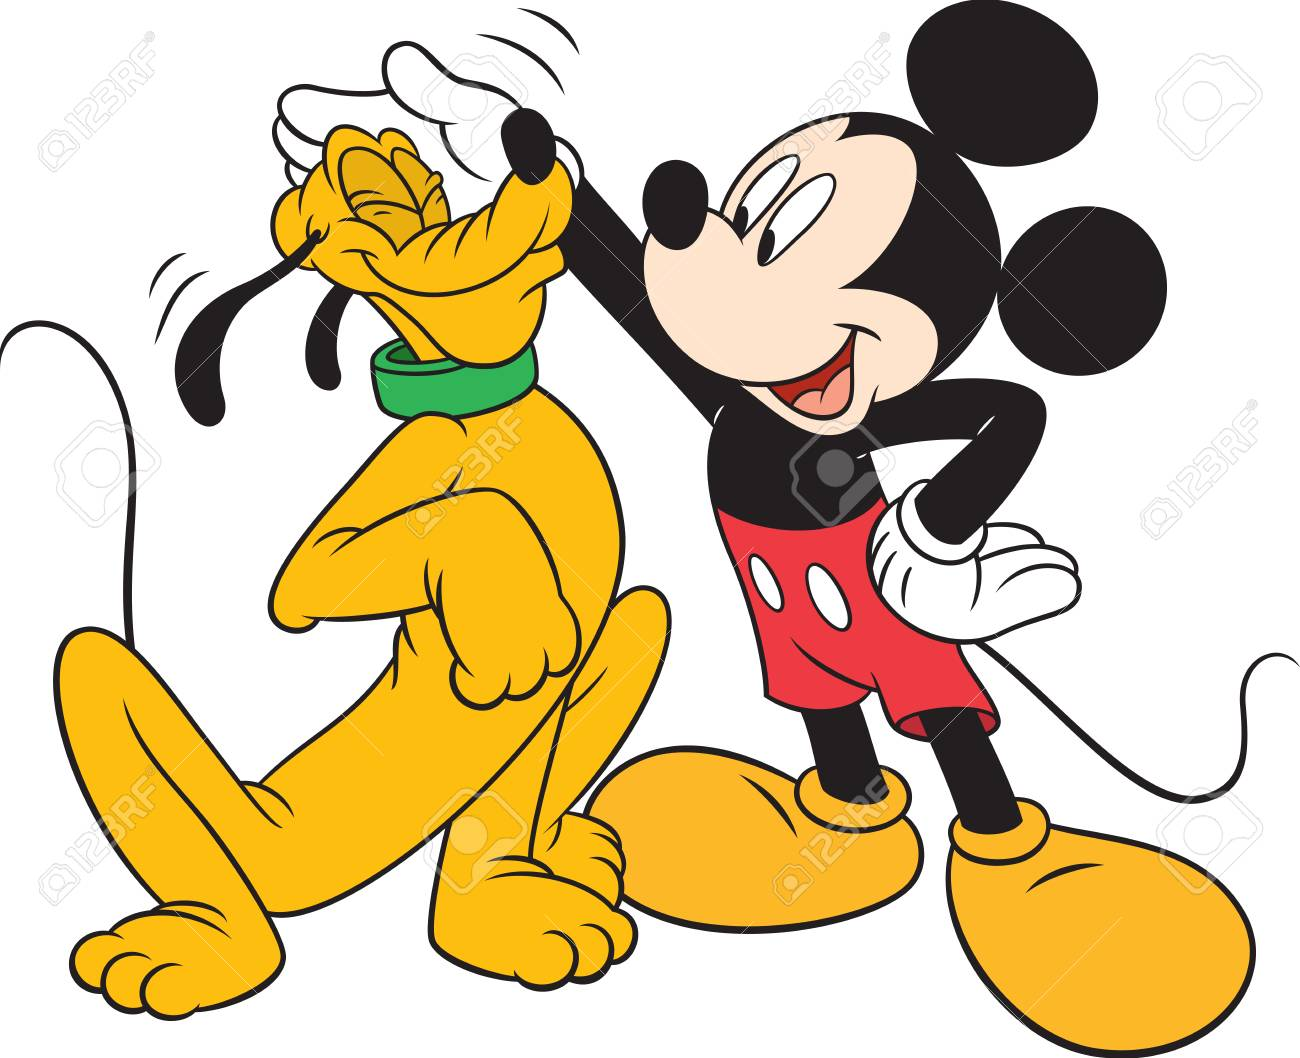 Pluto Mickey Mickey Mouse Affection Love The Dog Pluto Character Cartoon Illustration